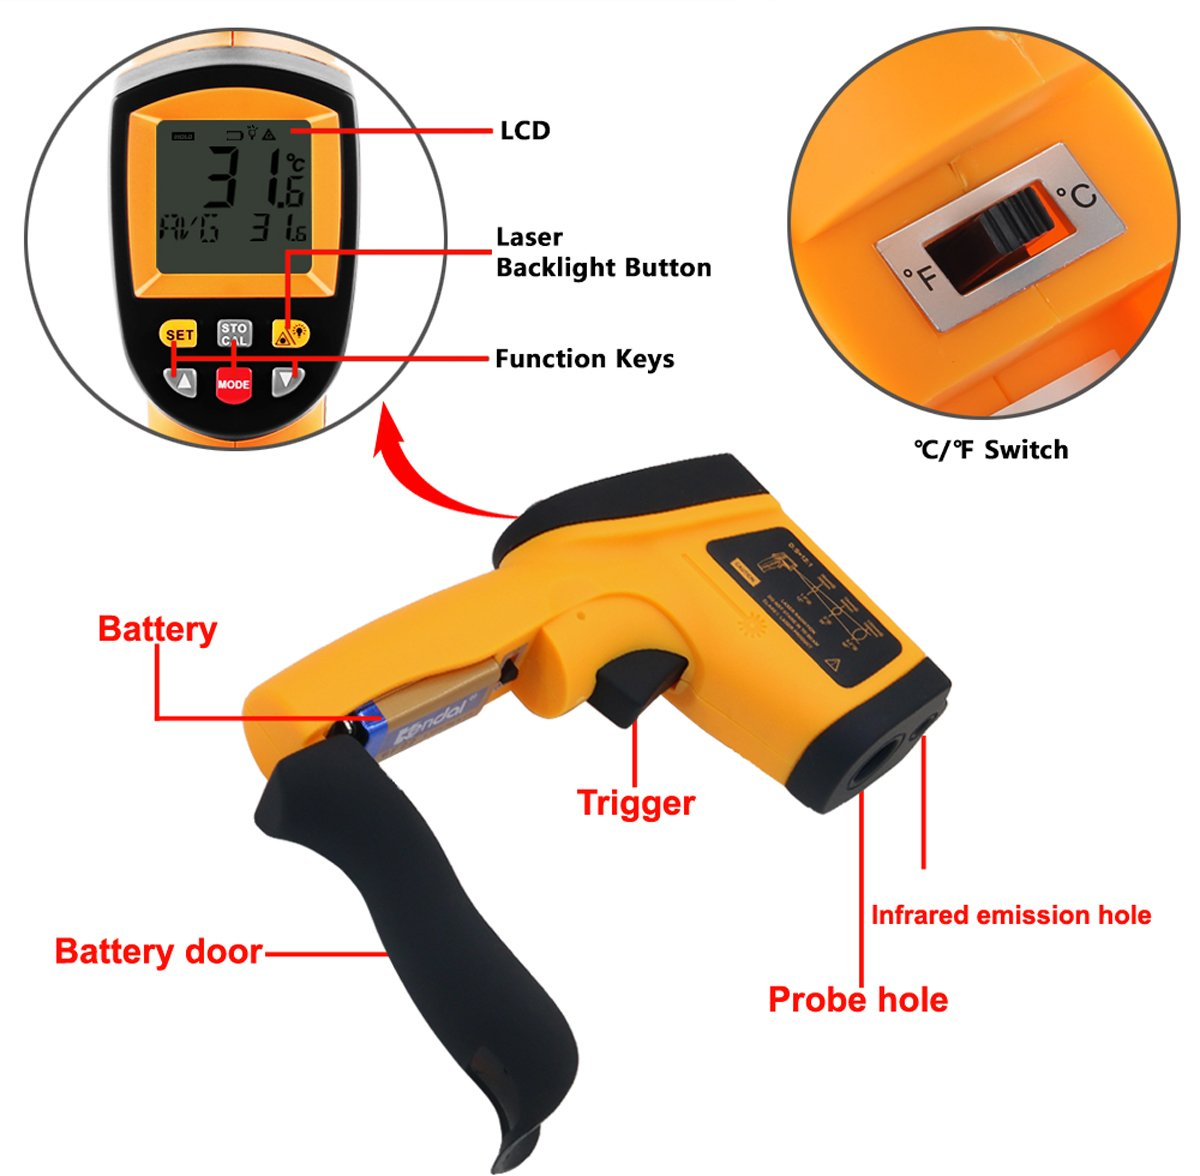 Tekit Non-Contact Laser Infrared Digital Thermometer, -50 ~ 900℃ Temperature Measuring Range, Handheld Laser Target Pointer / Backlight / Auto Power On/Off by Tekit (Image #4)